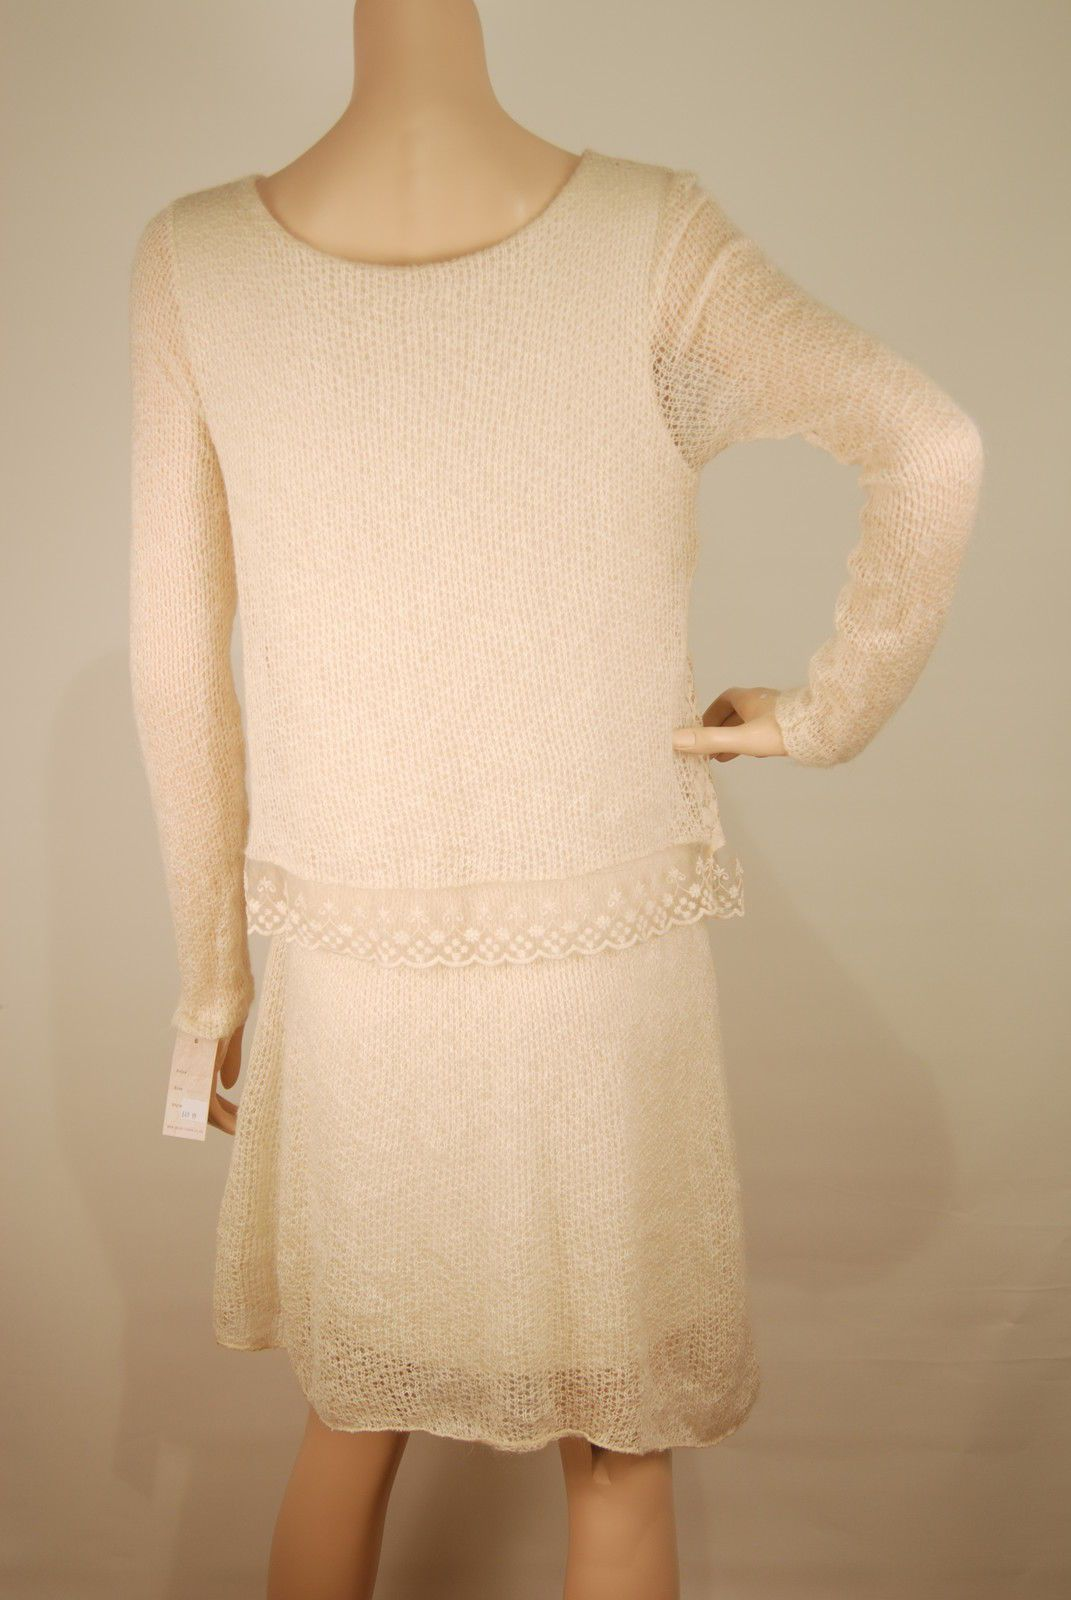 http://youraccount.ekmpowershop27.com/ekmps/shops/conmigo/images/made-in-italy-abg132-beige-fitted-lace-dress-%5B2%5D-11422-p.jpg